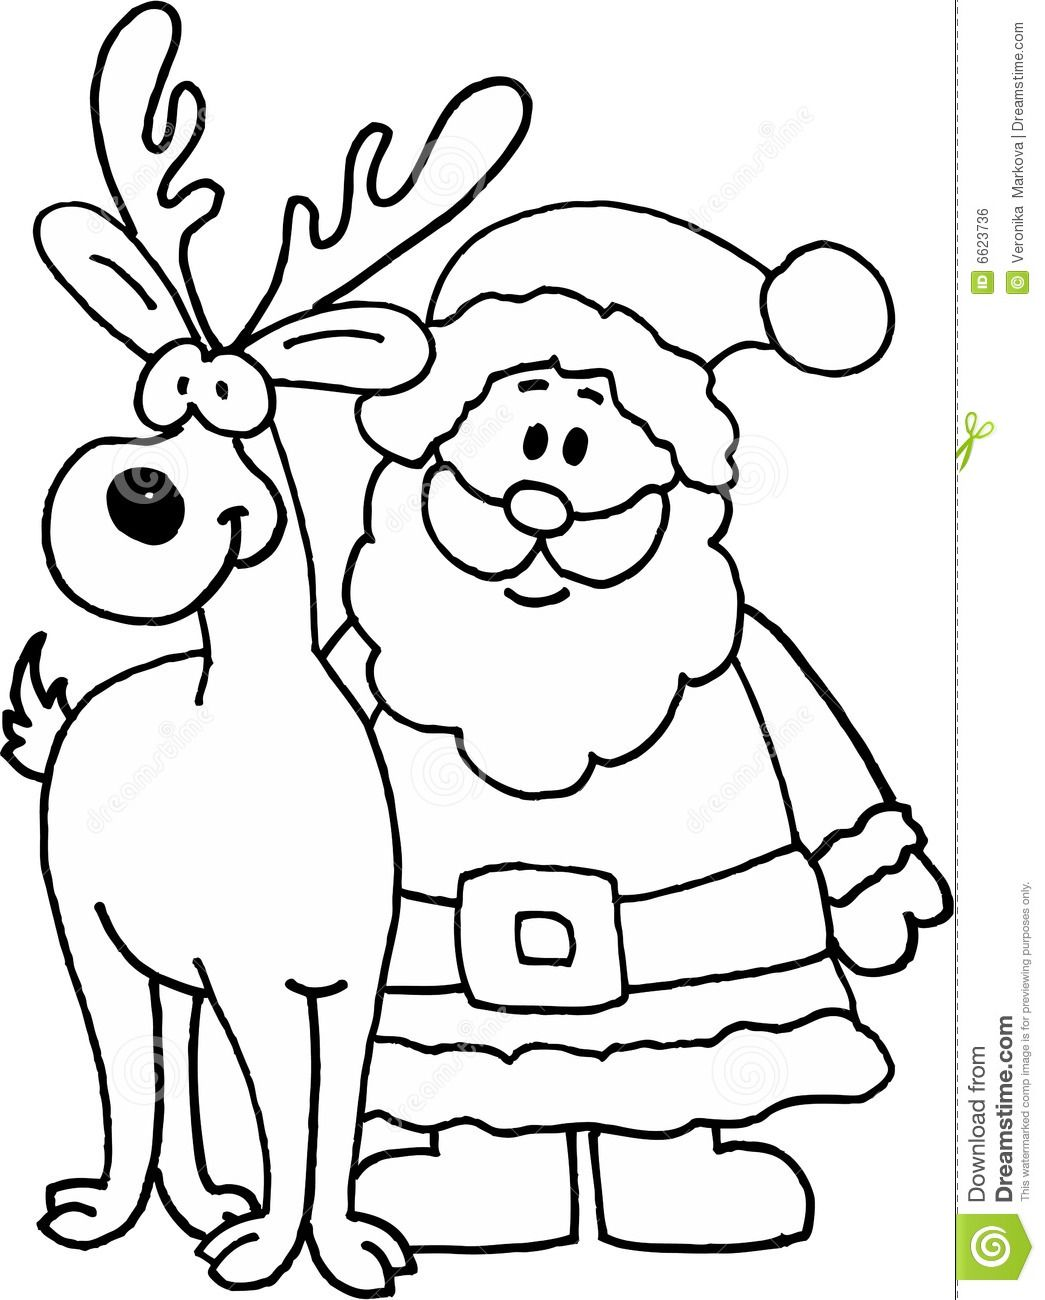 Uncategorized Santa Drawings santa claus and reindeer drawings images pictures becuo becuo